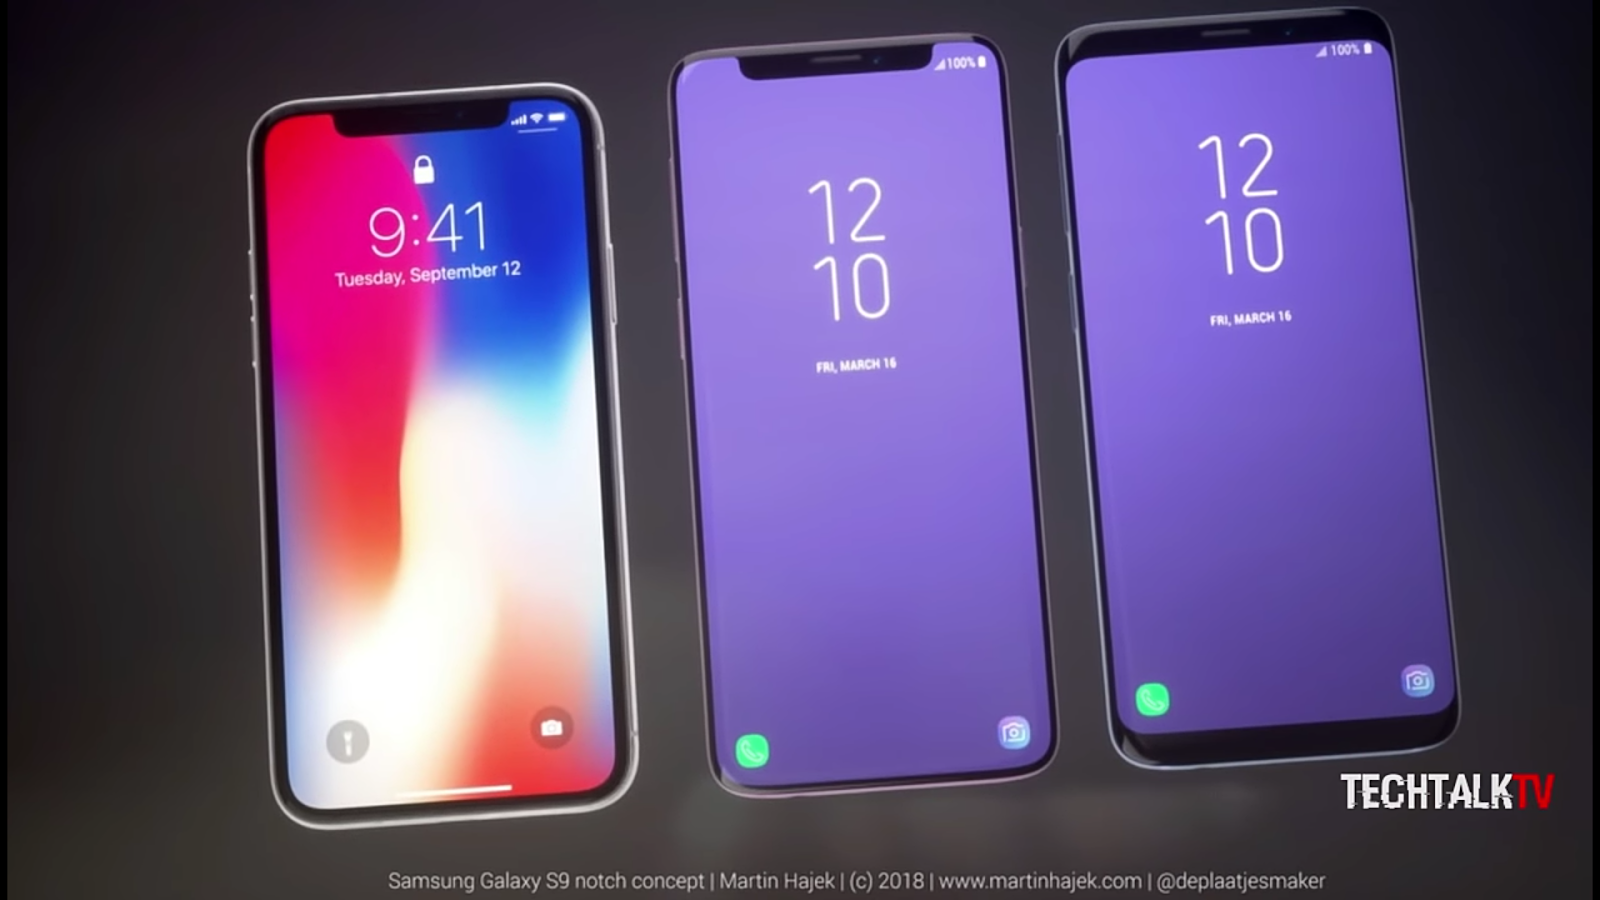 Side By Side - Apple iPhone X, Notched Galaxy S9, and the original galaxy s9